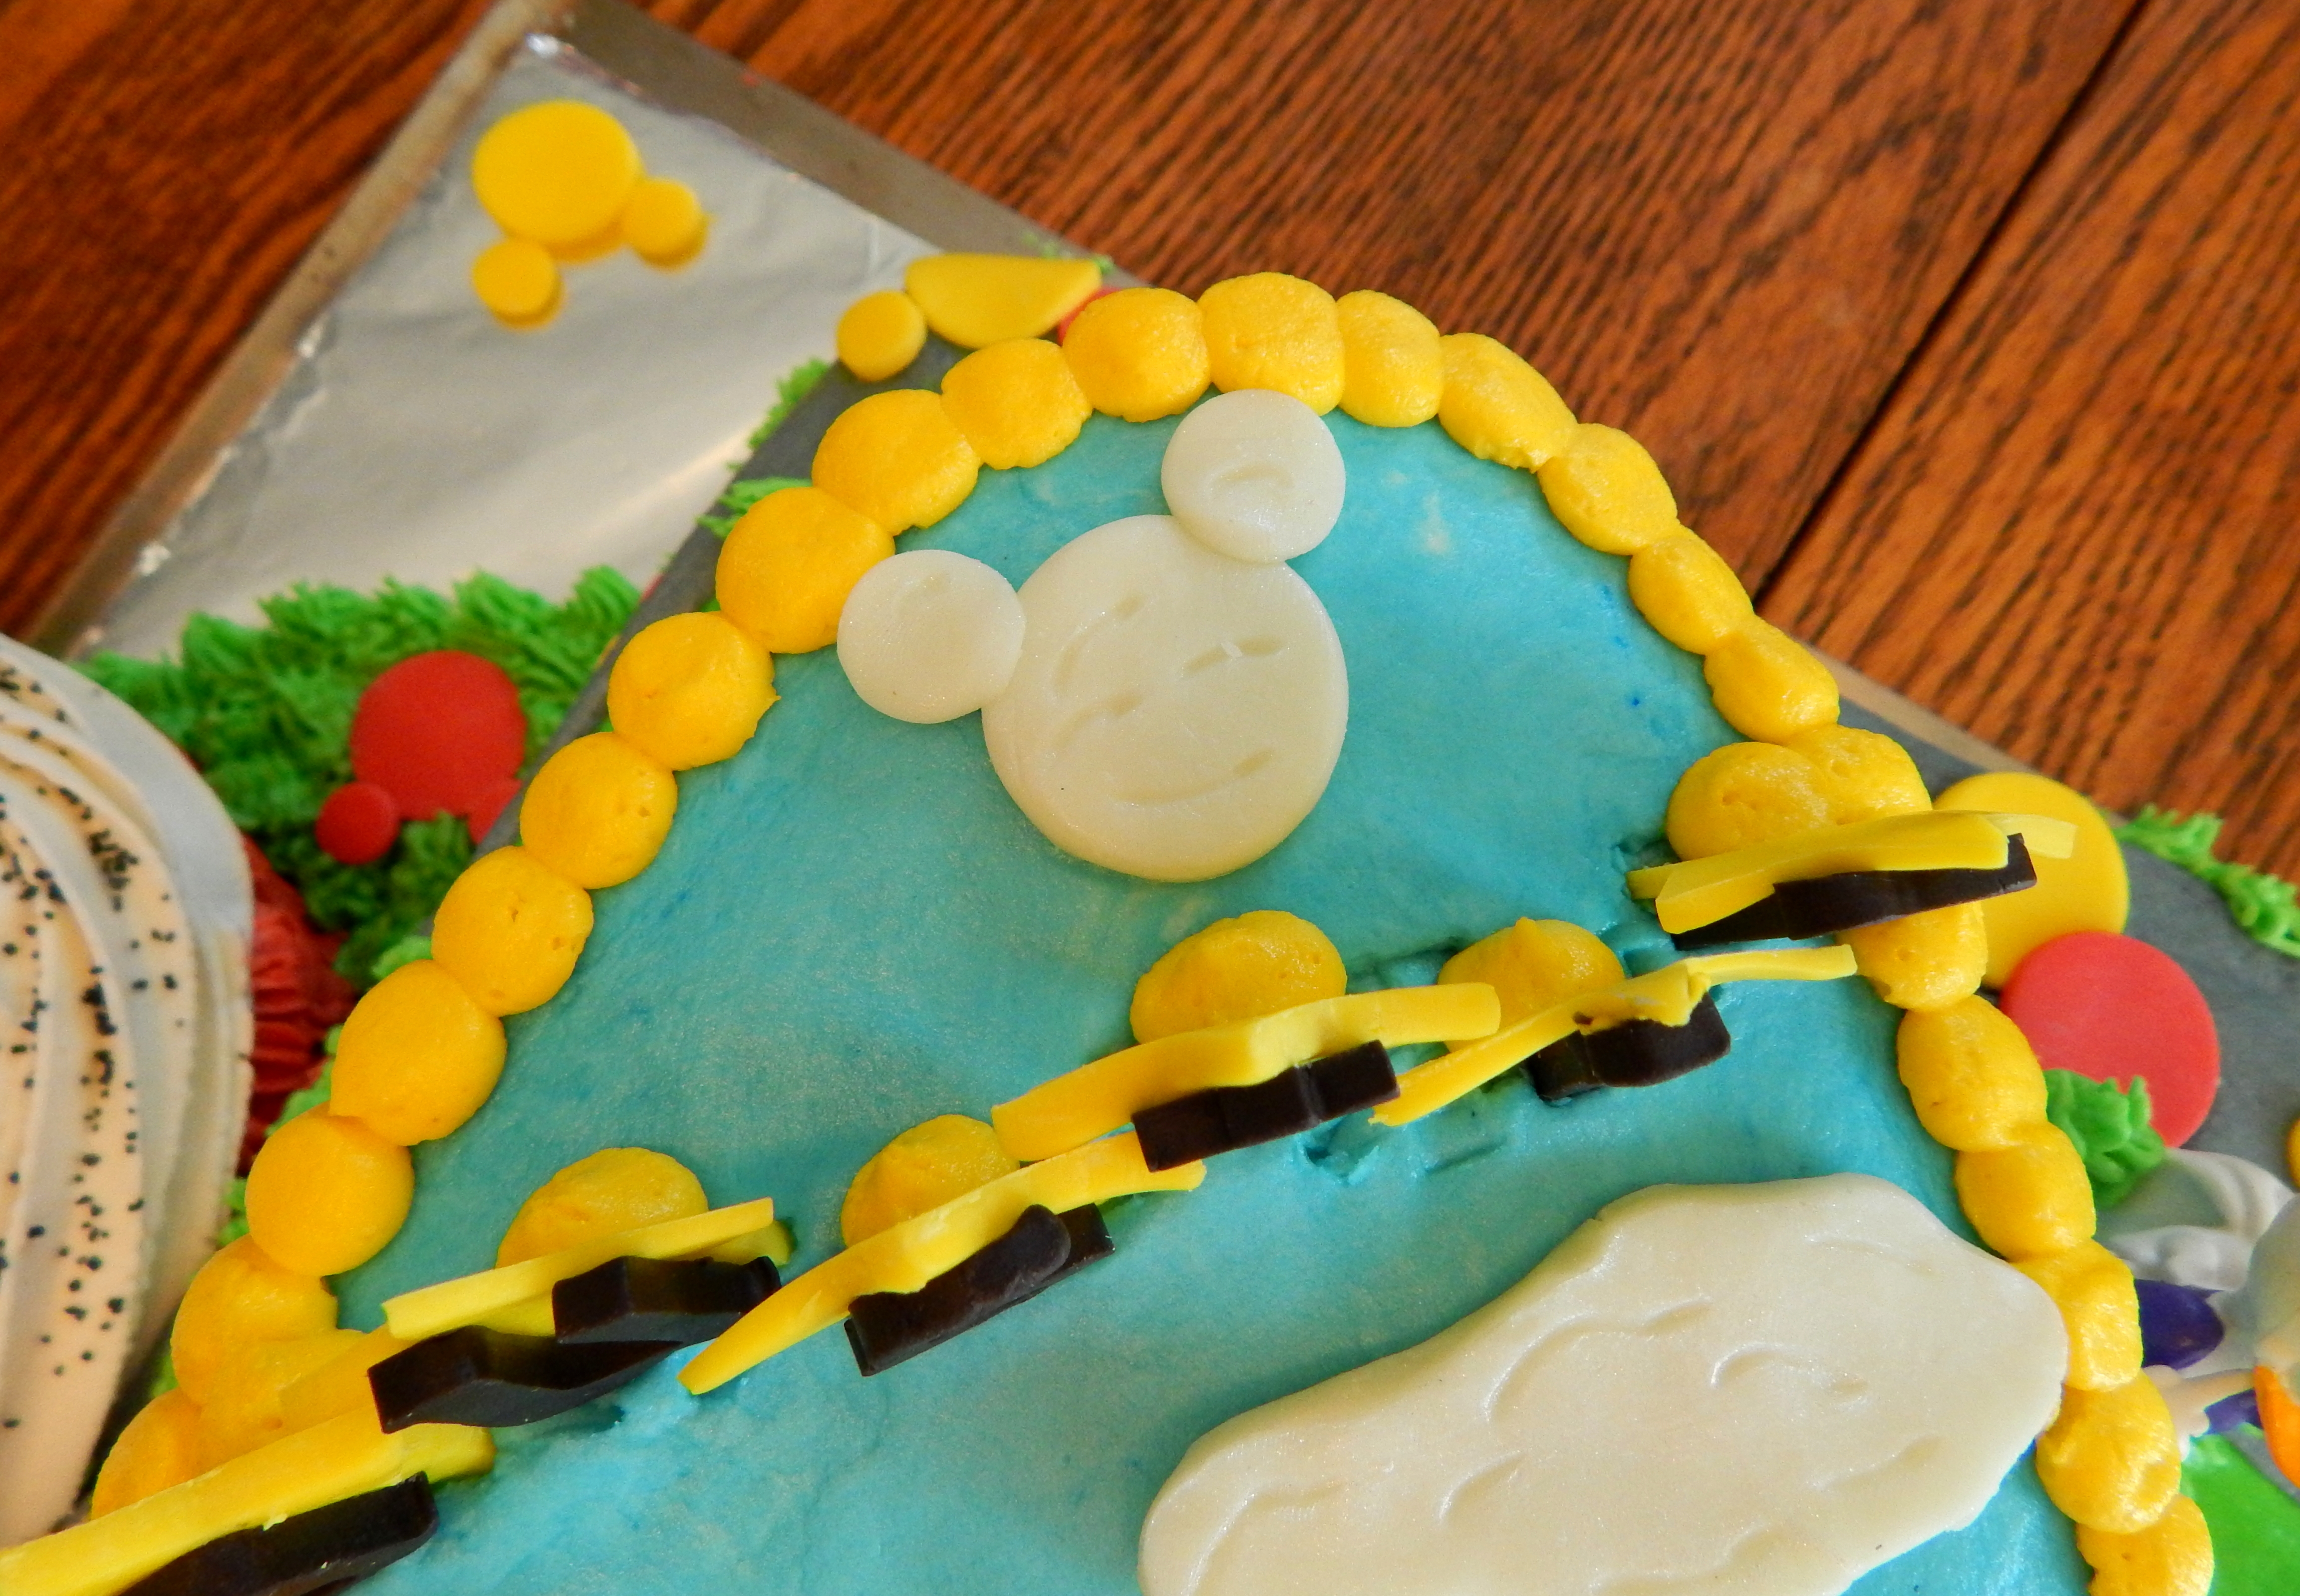 Austins Mickey Mouse Clubhouse First Birthday Cake And Smash Cupcake 12 Inch Square Single Layer Bottom With A Number 1 Carved From 10